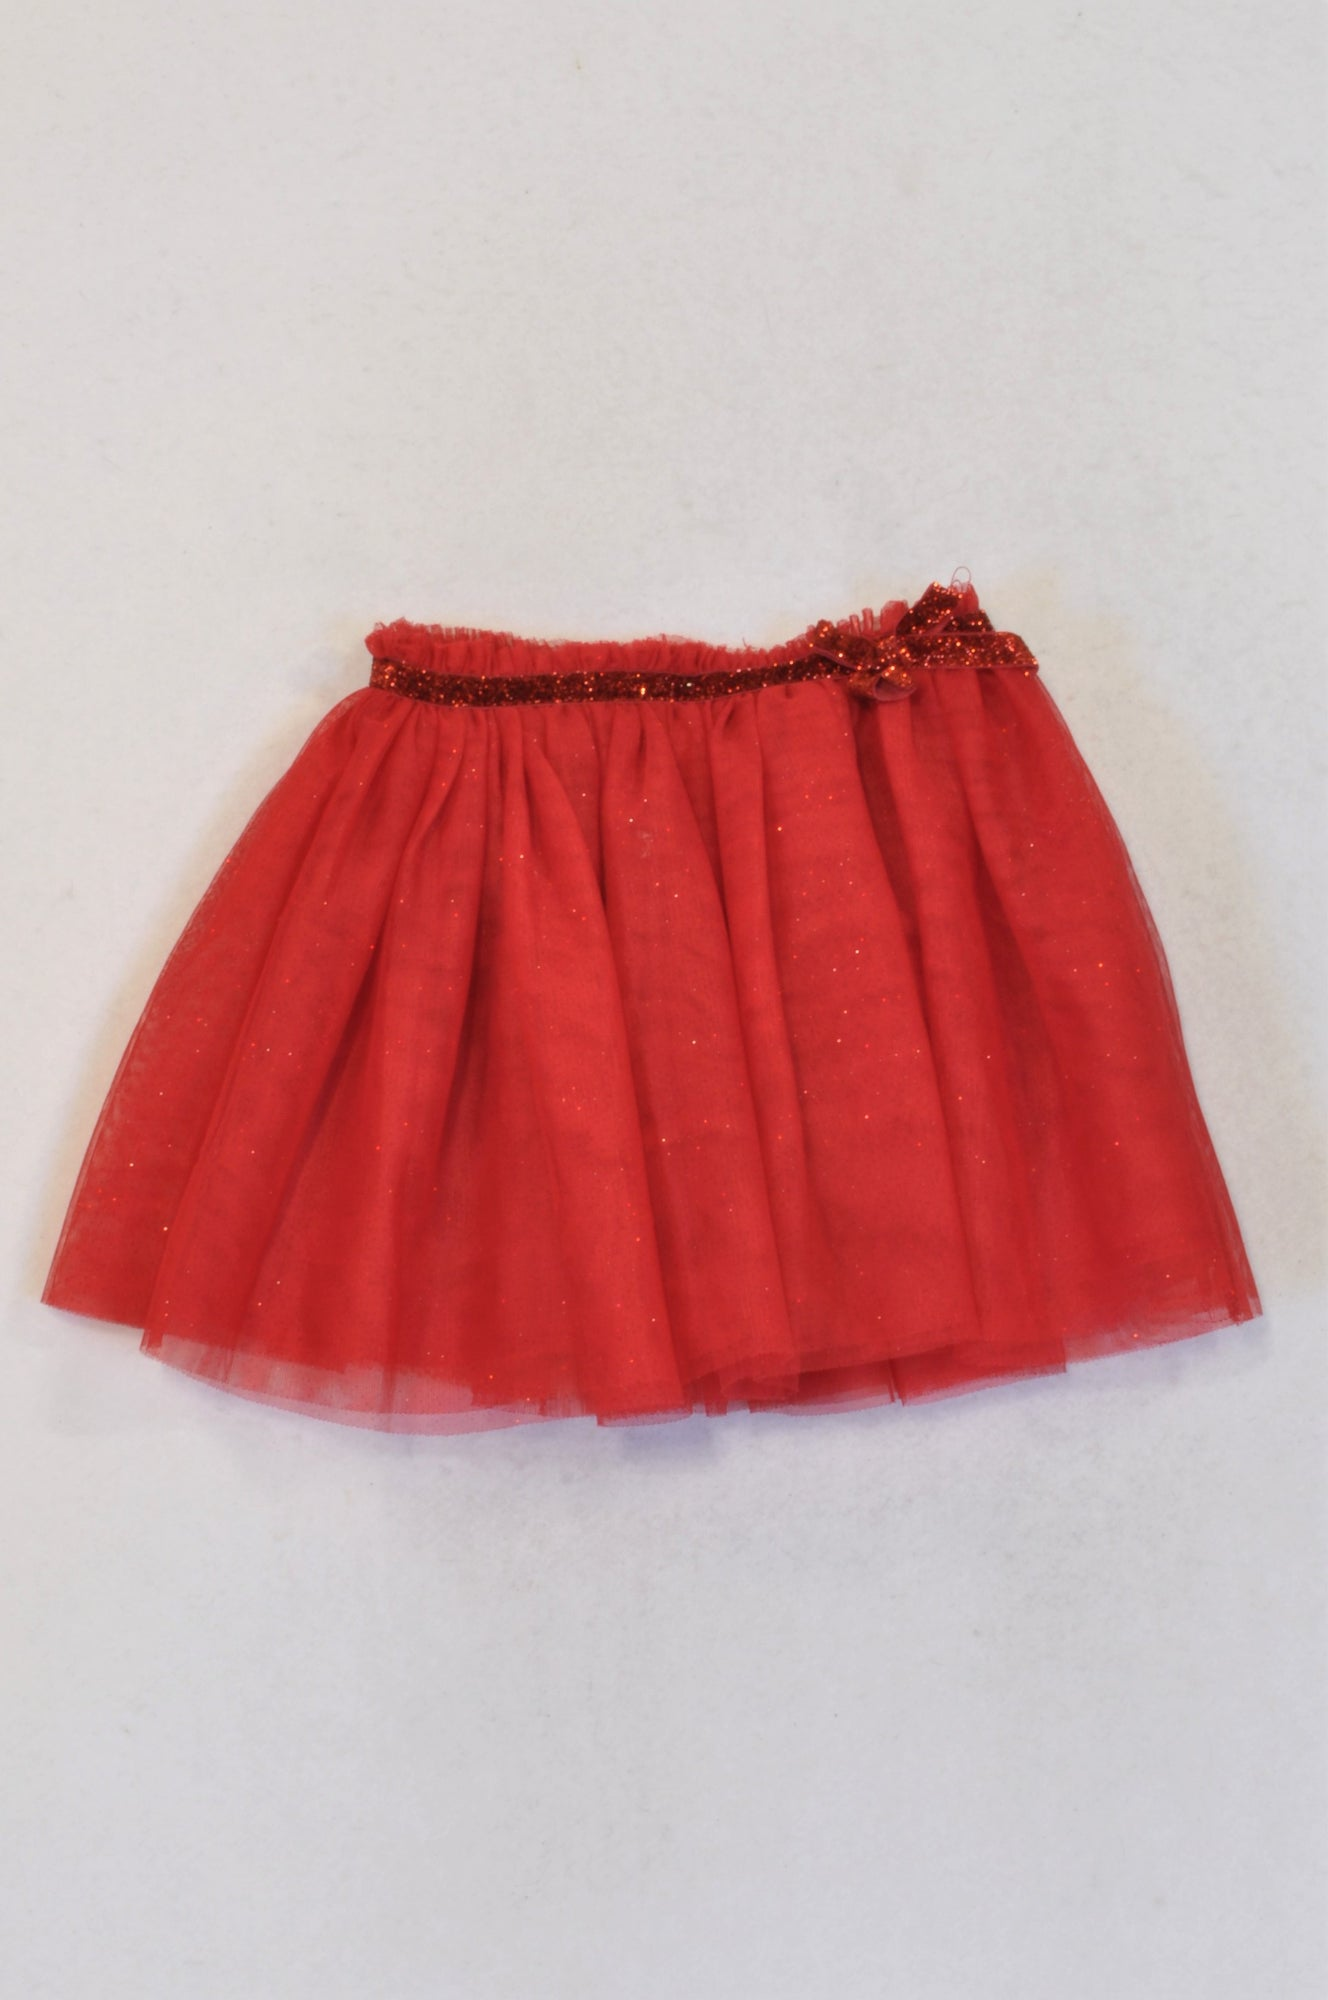 H&M Red Glitter Tulle Puffy Skirt Girls 2-3 years